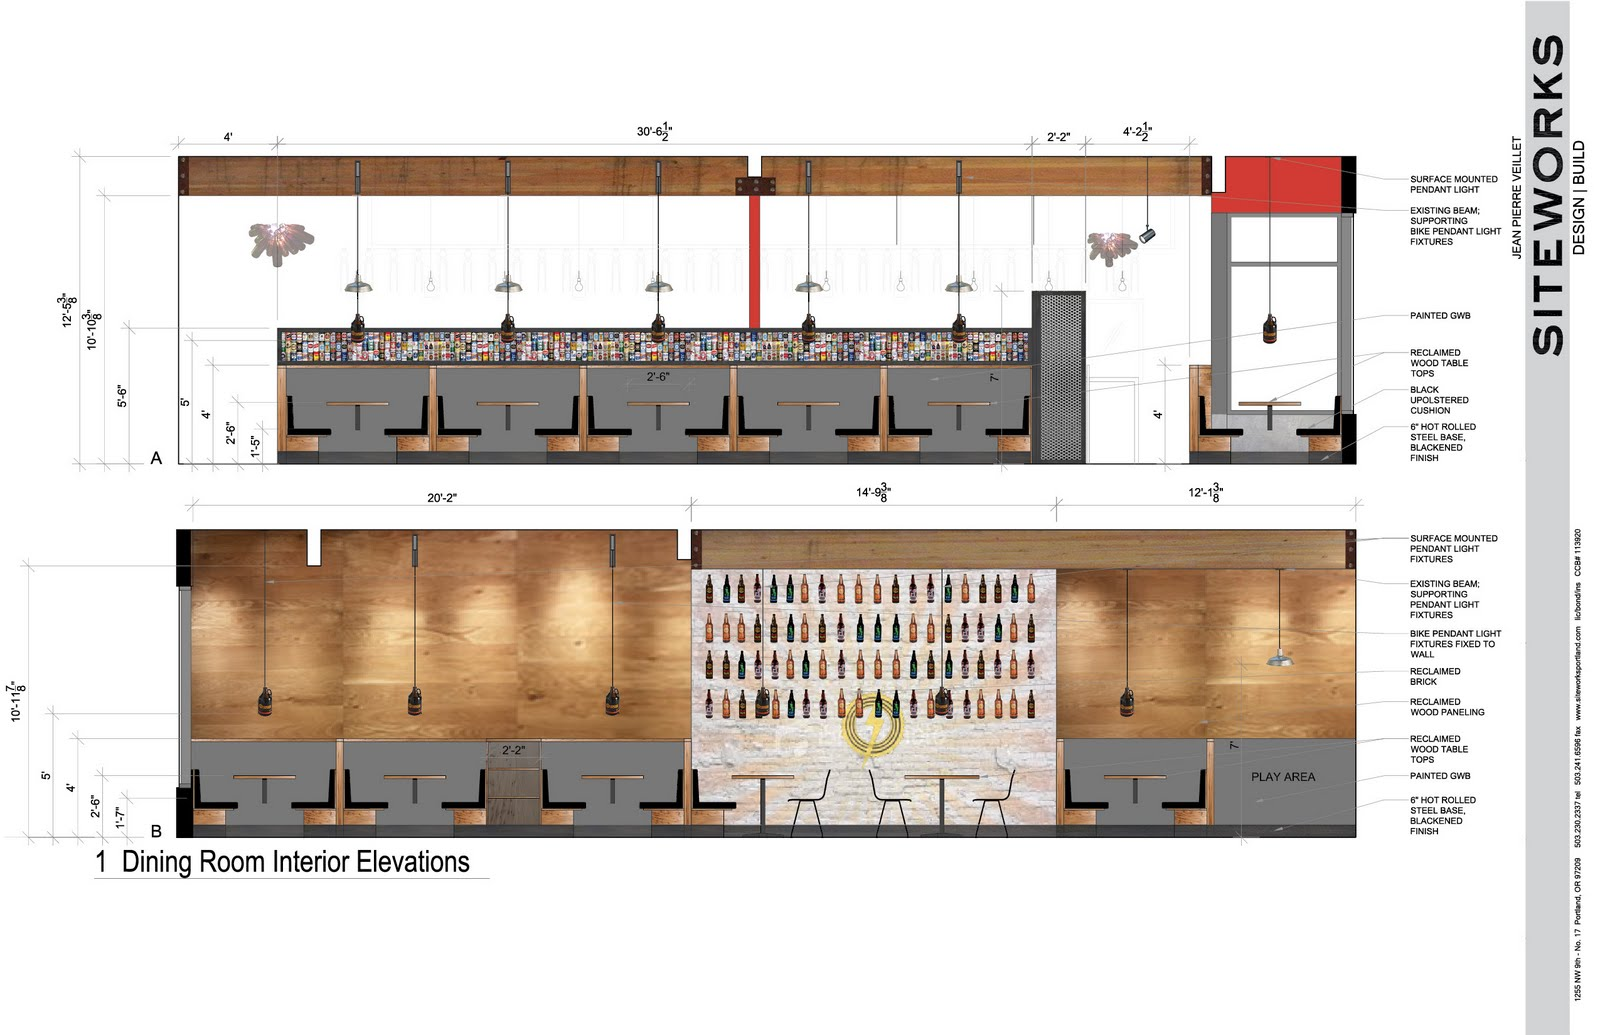 Restaurant bar elevation drawings joy studio design